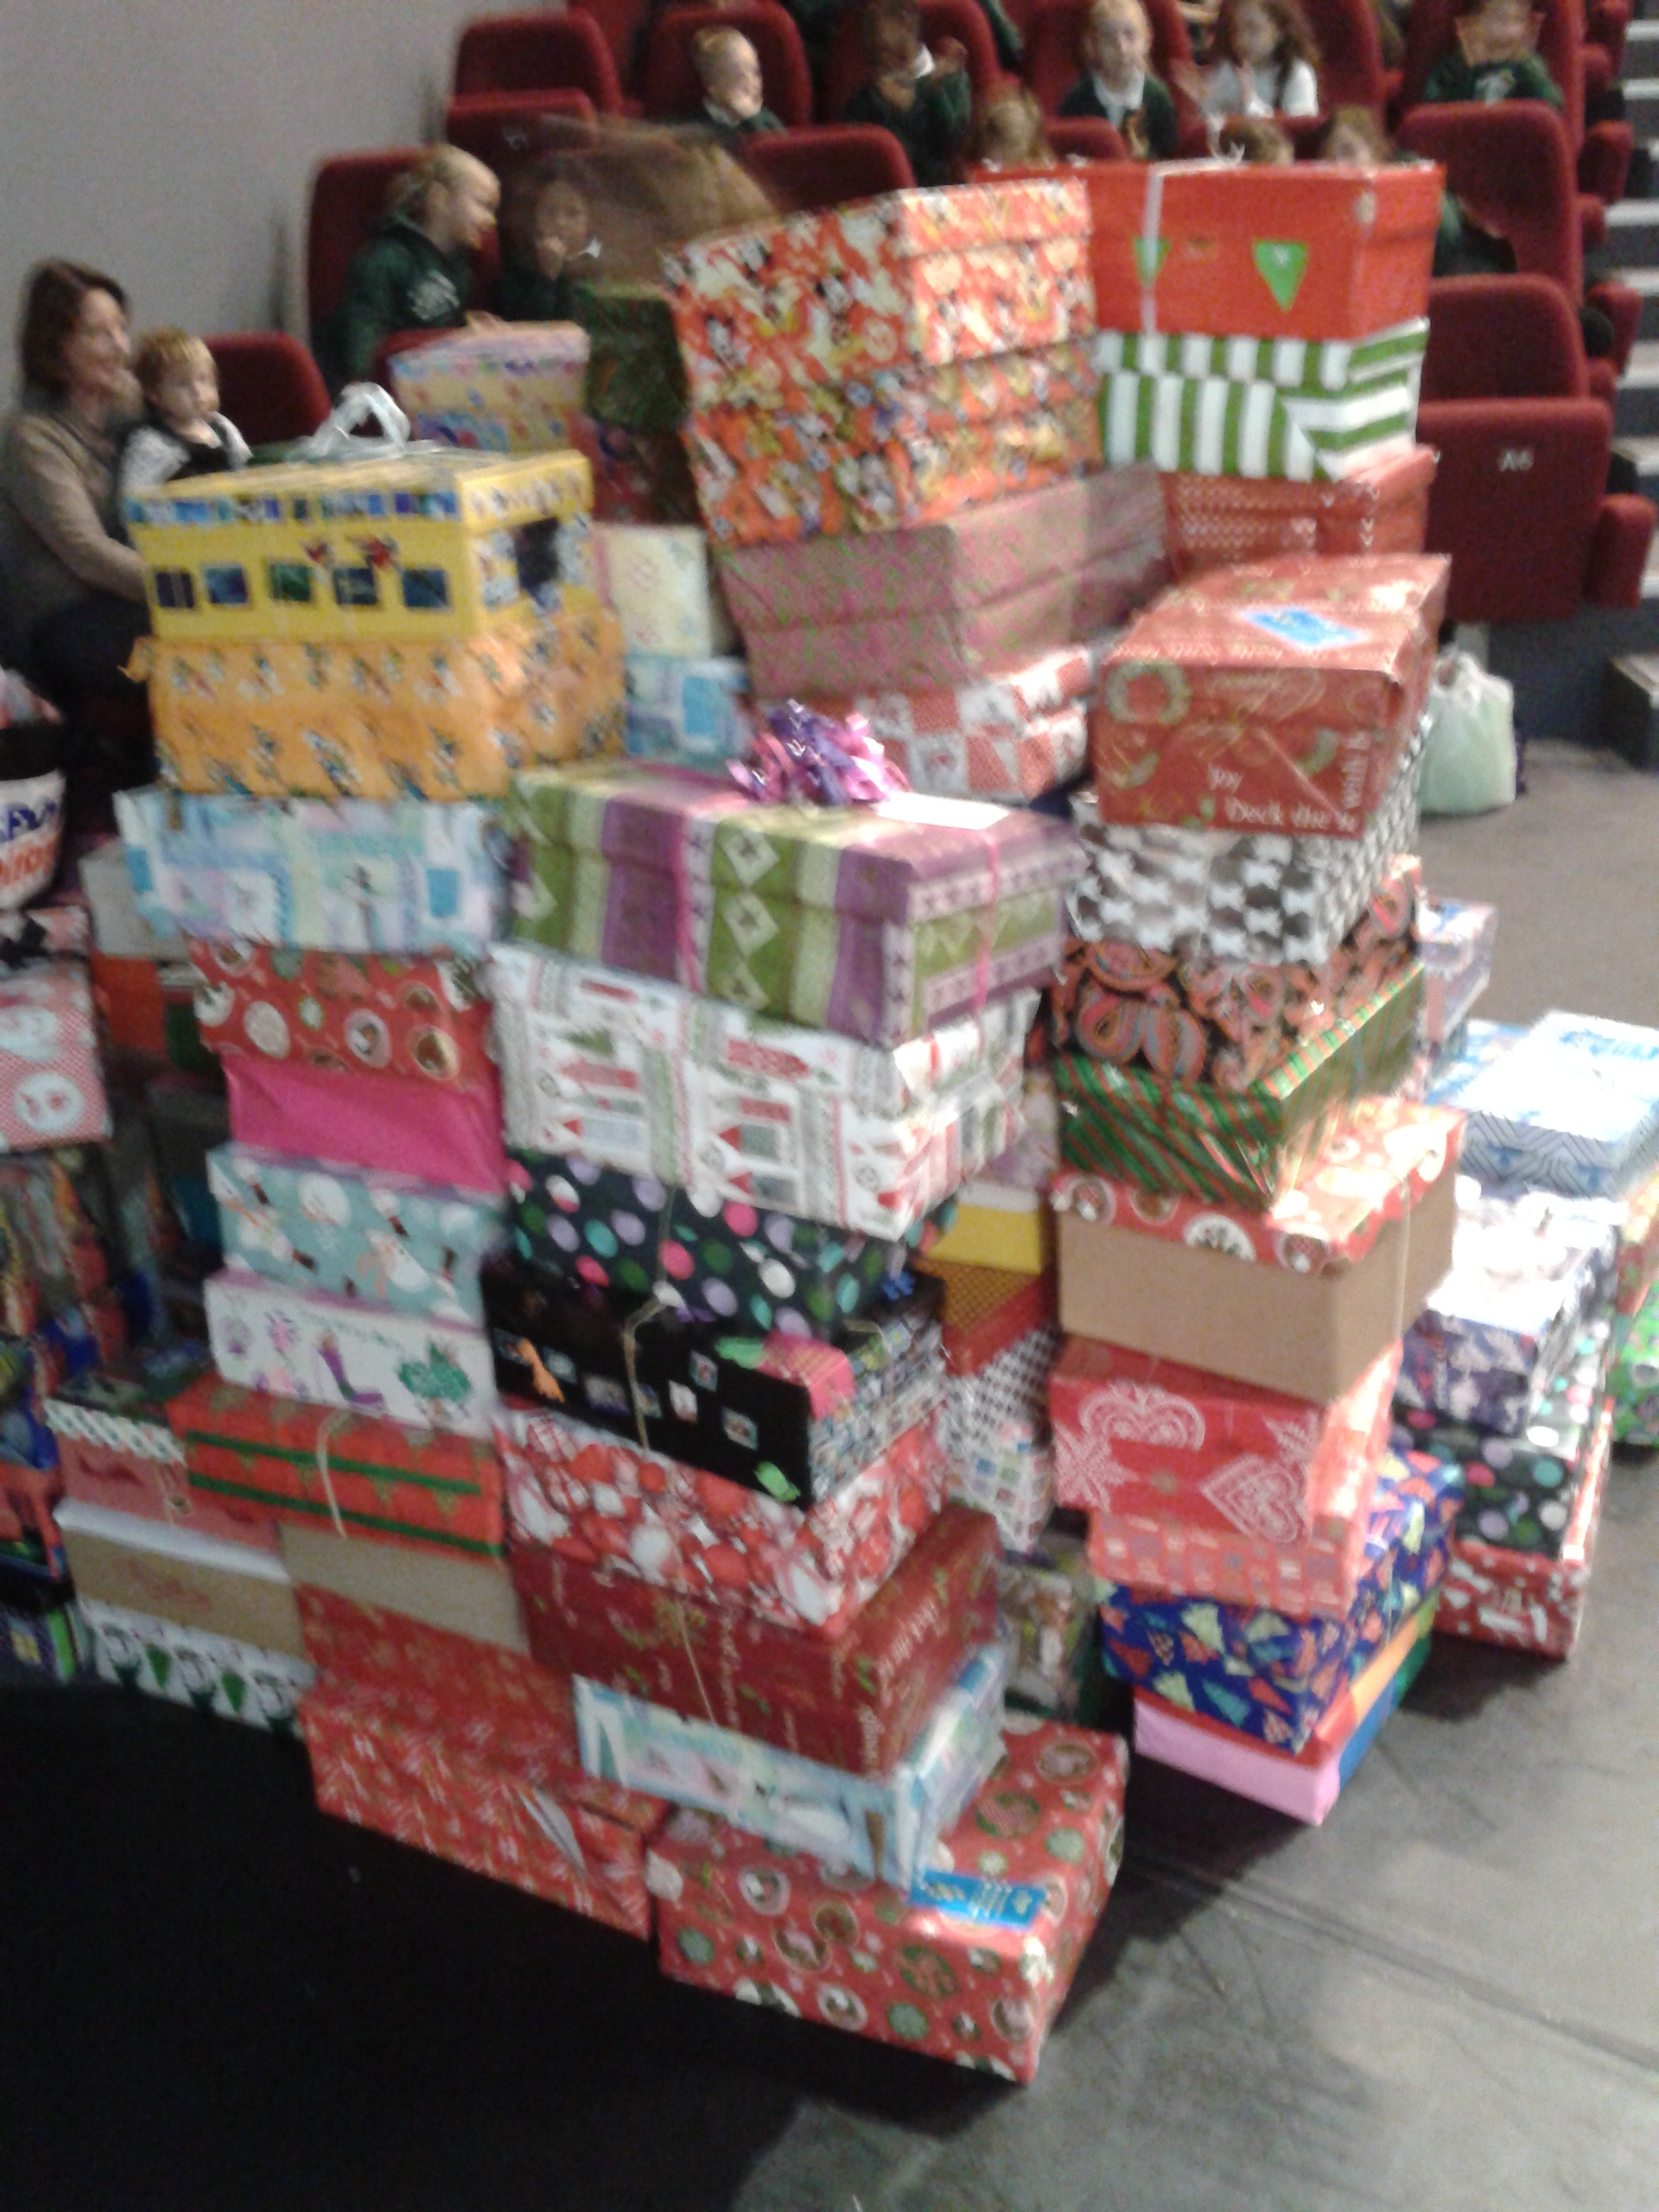 Elementary Students Fill Shoeboxes With Gifts For Children In Need